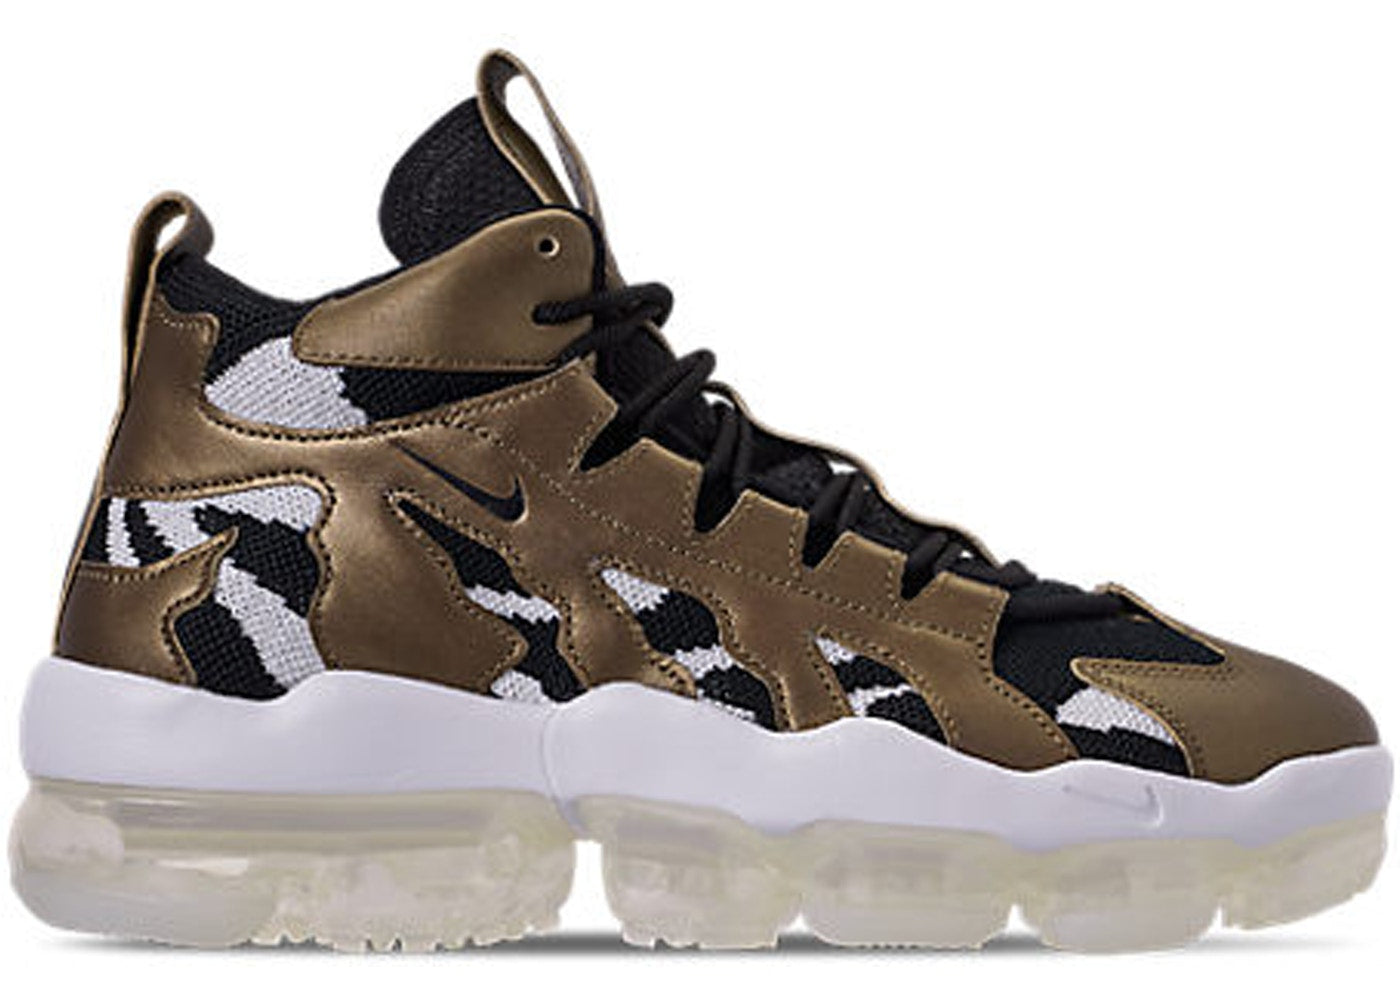 f9bb56de151 Mens Nike Air VaporMax Gliese Metallic Field Black White AO2445-900 ...